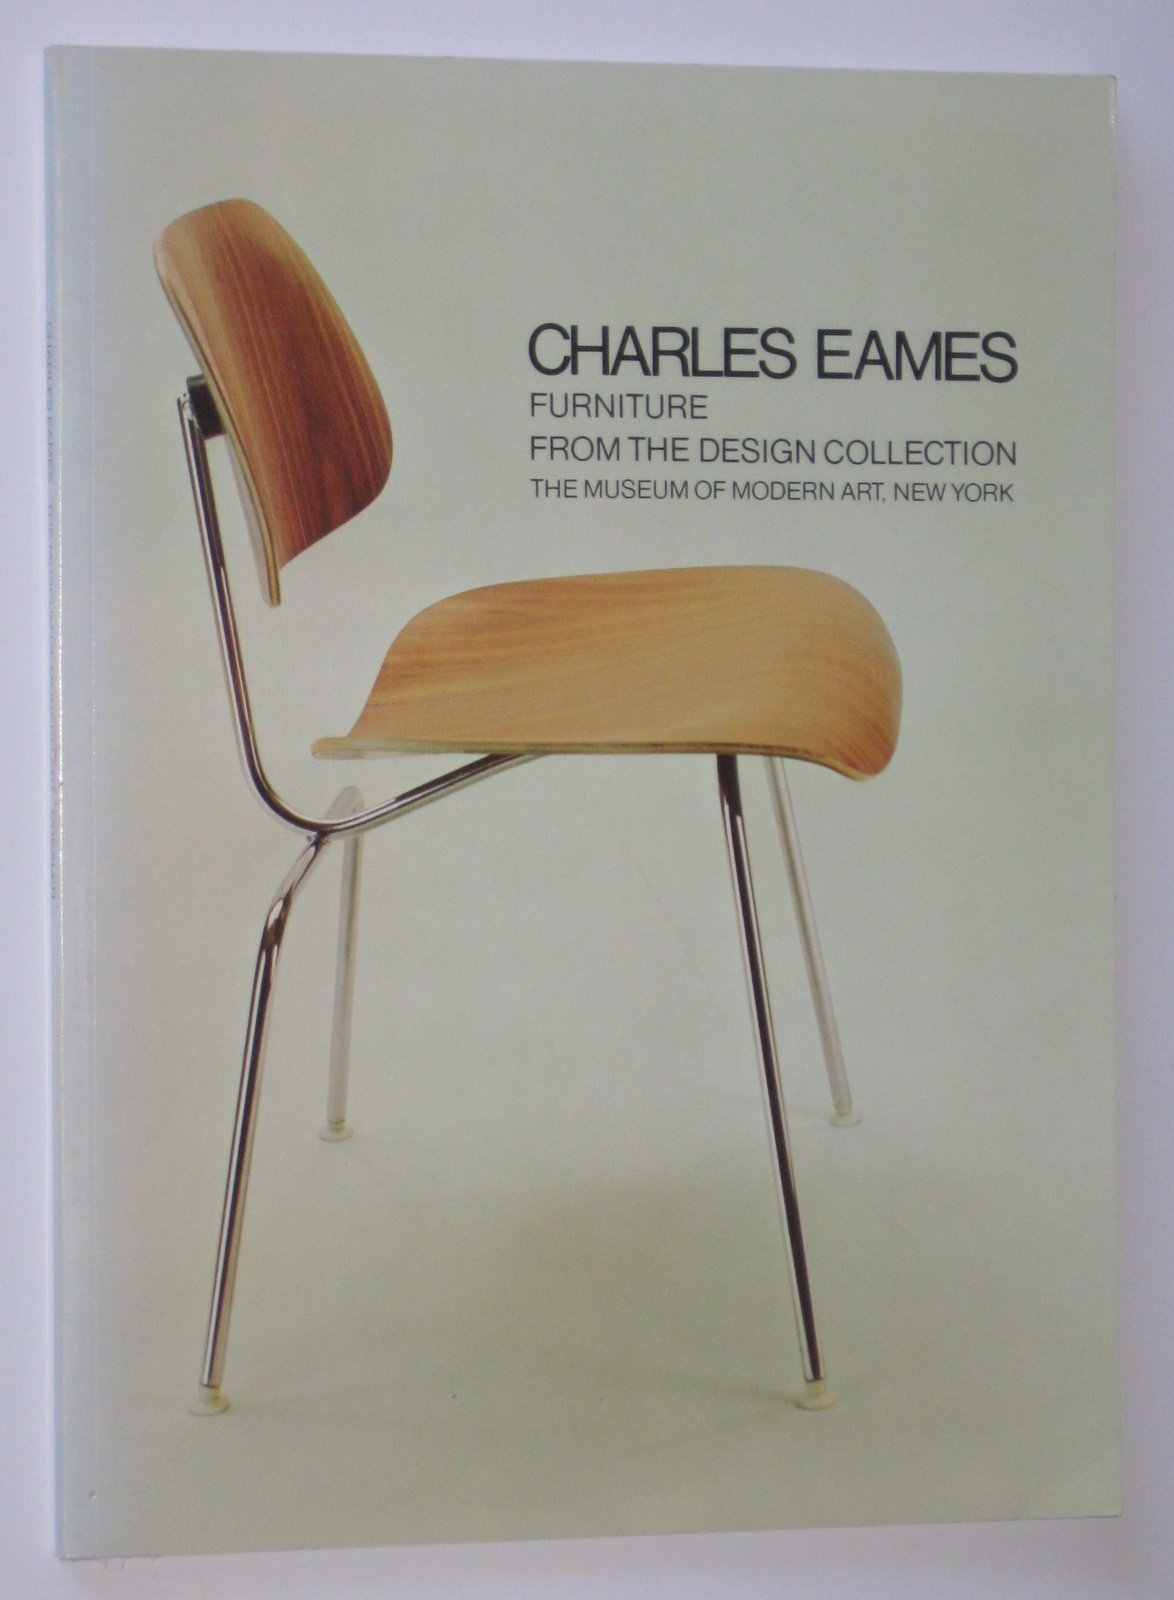 eames furniture design 60's charles eames furniture from the design collection the museum of modern art new york arthur drexler 9780870703140 amazoncom books